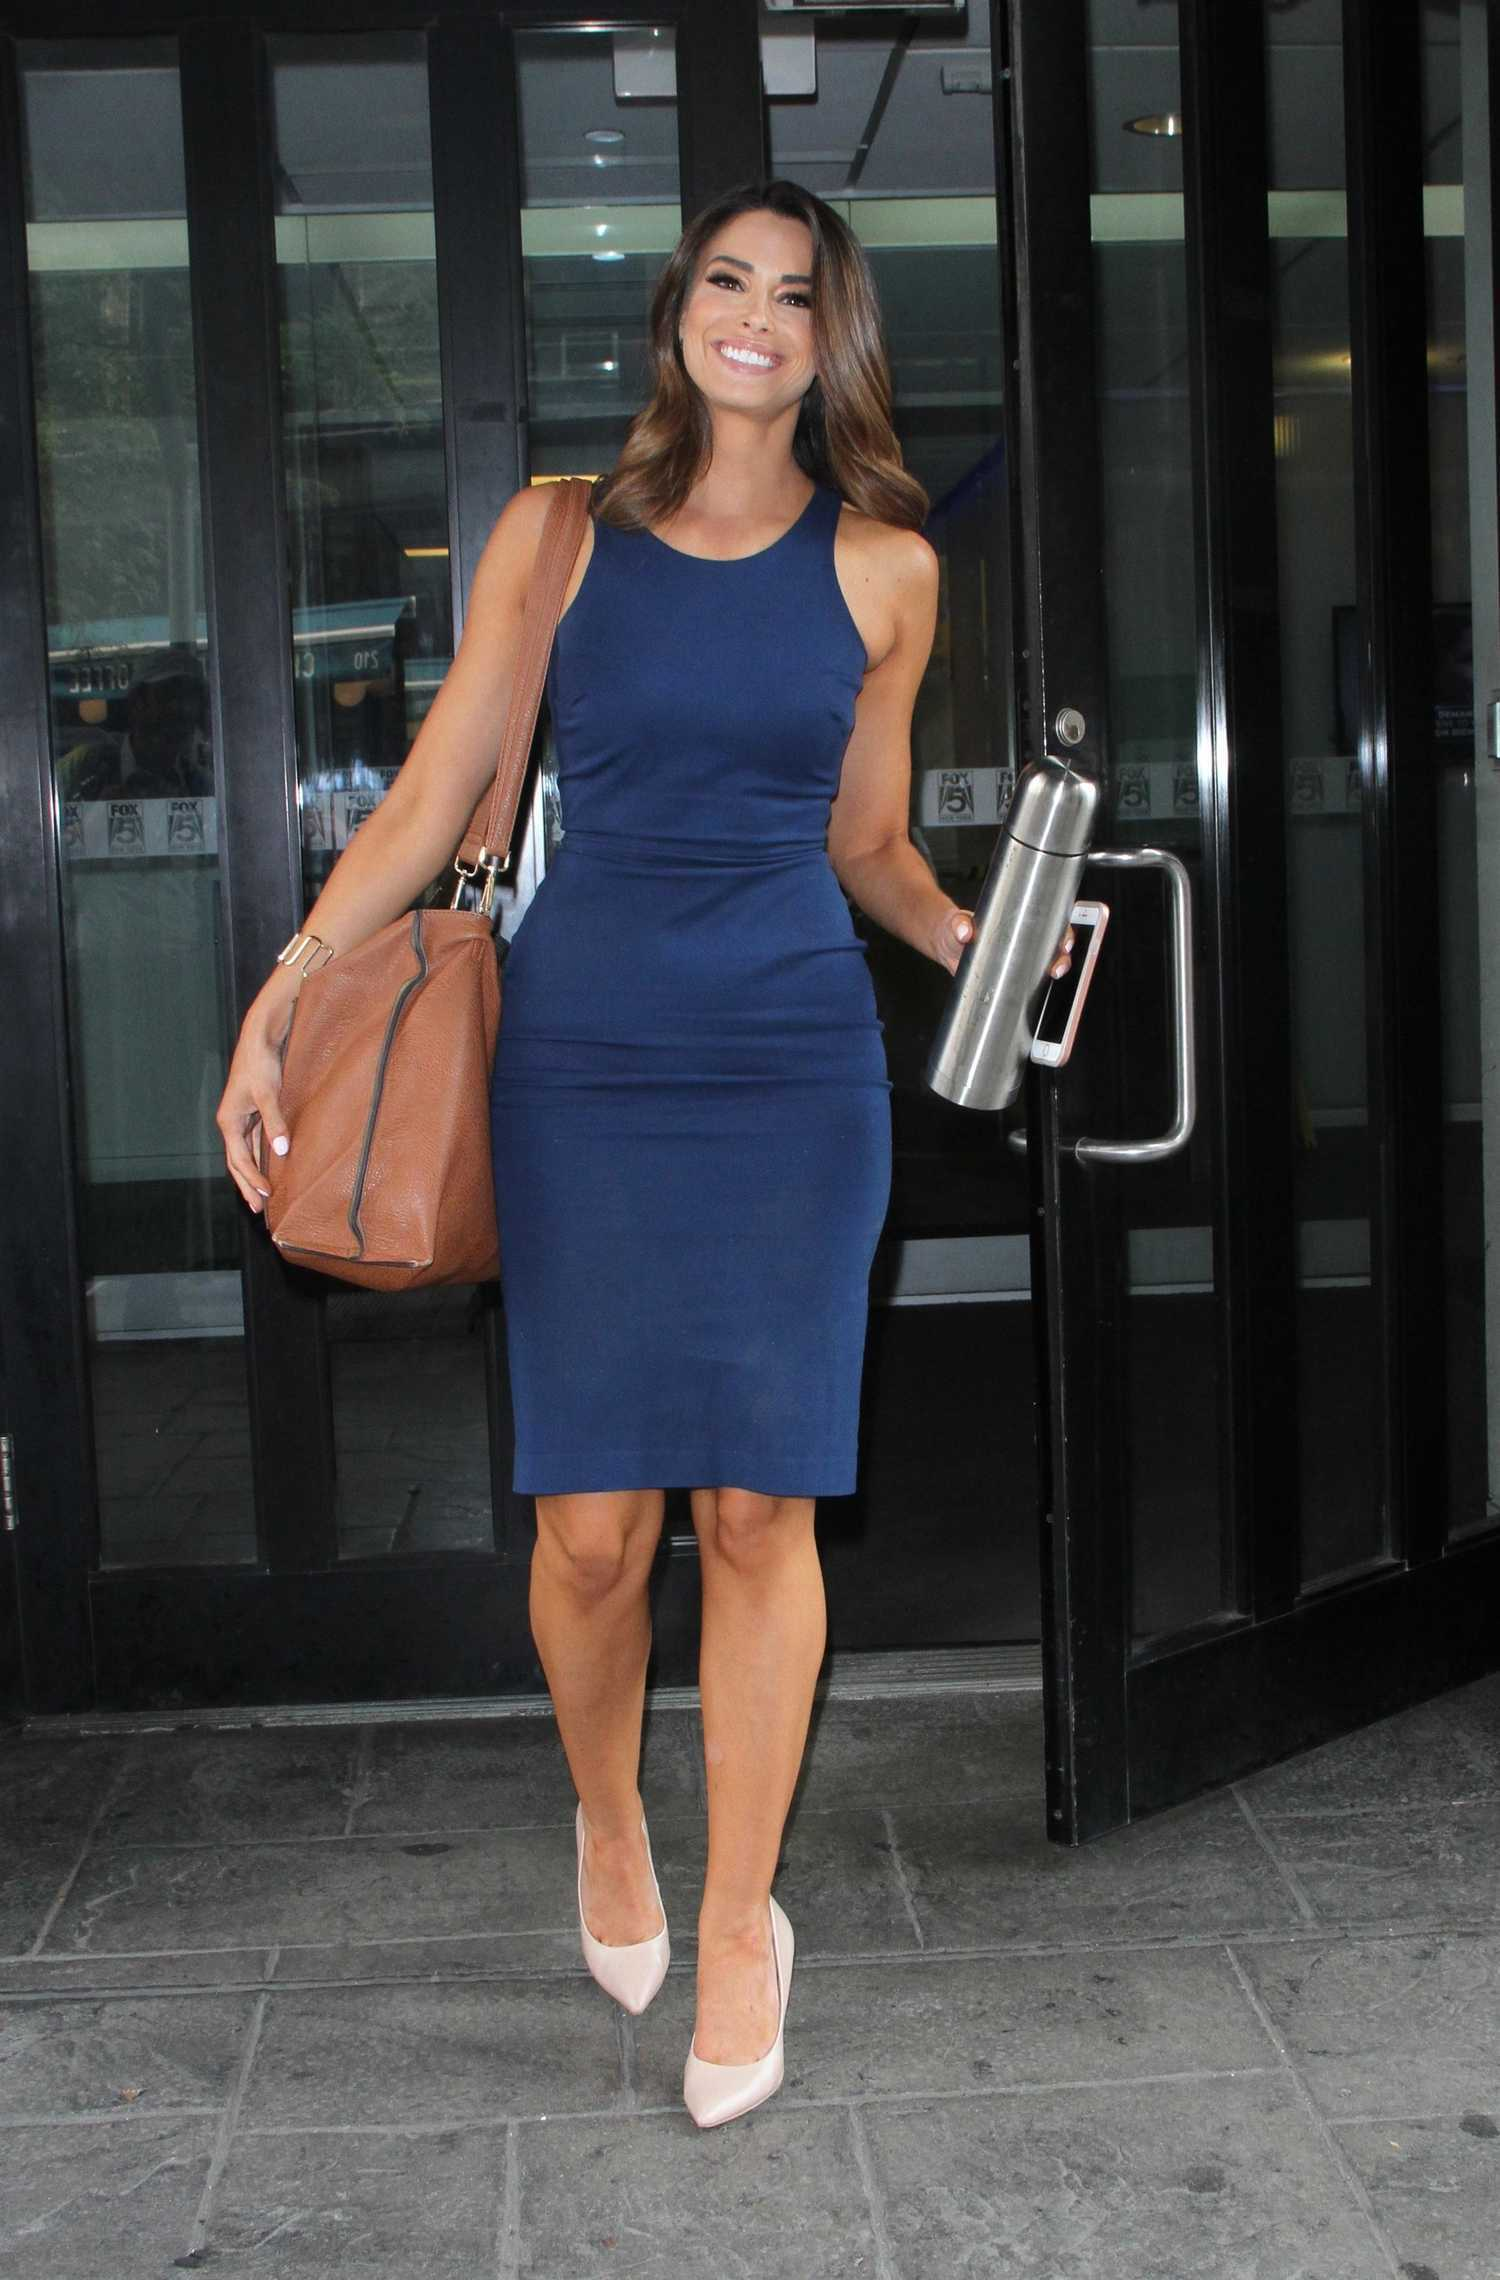 Jennifer Lahmers in a Blue Form Fitting Dress Was Seen Out